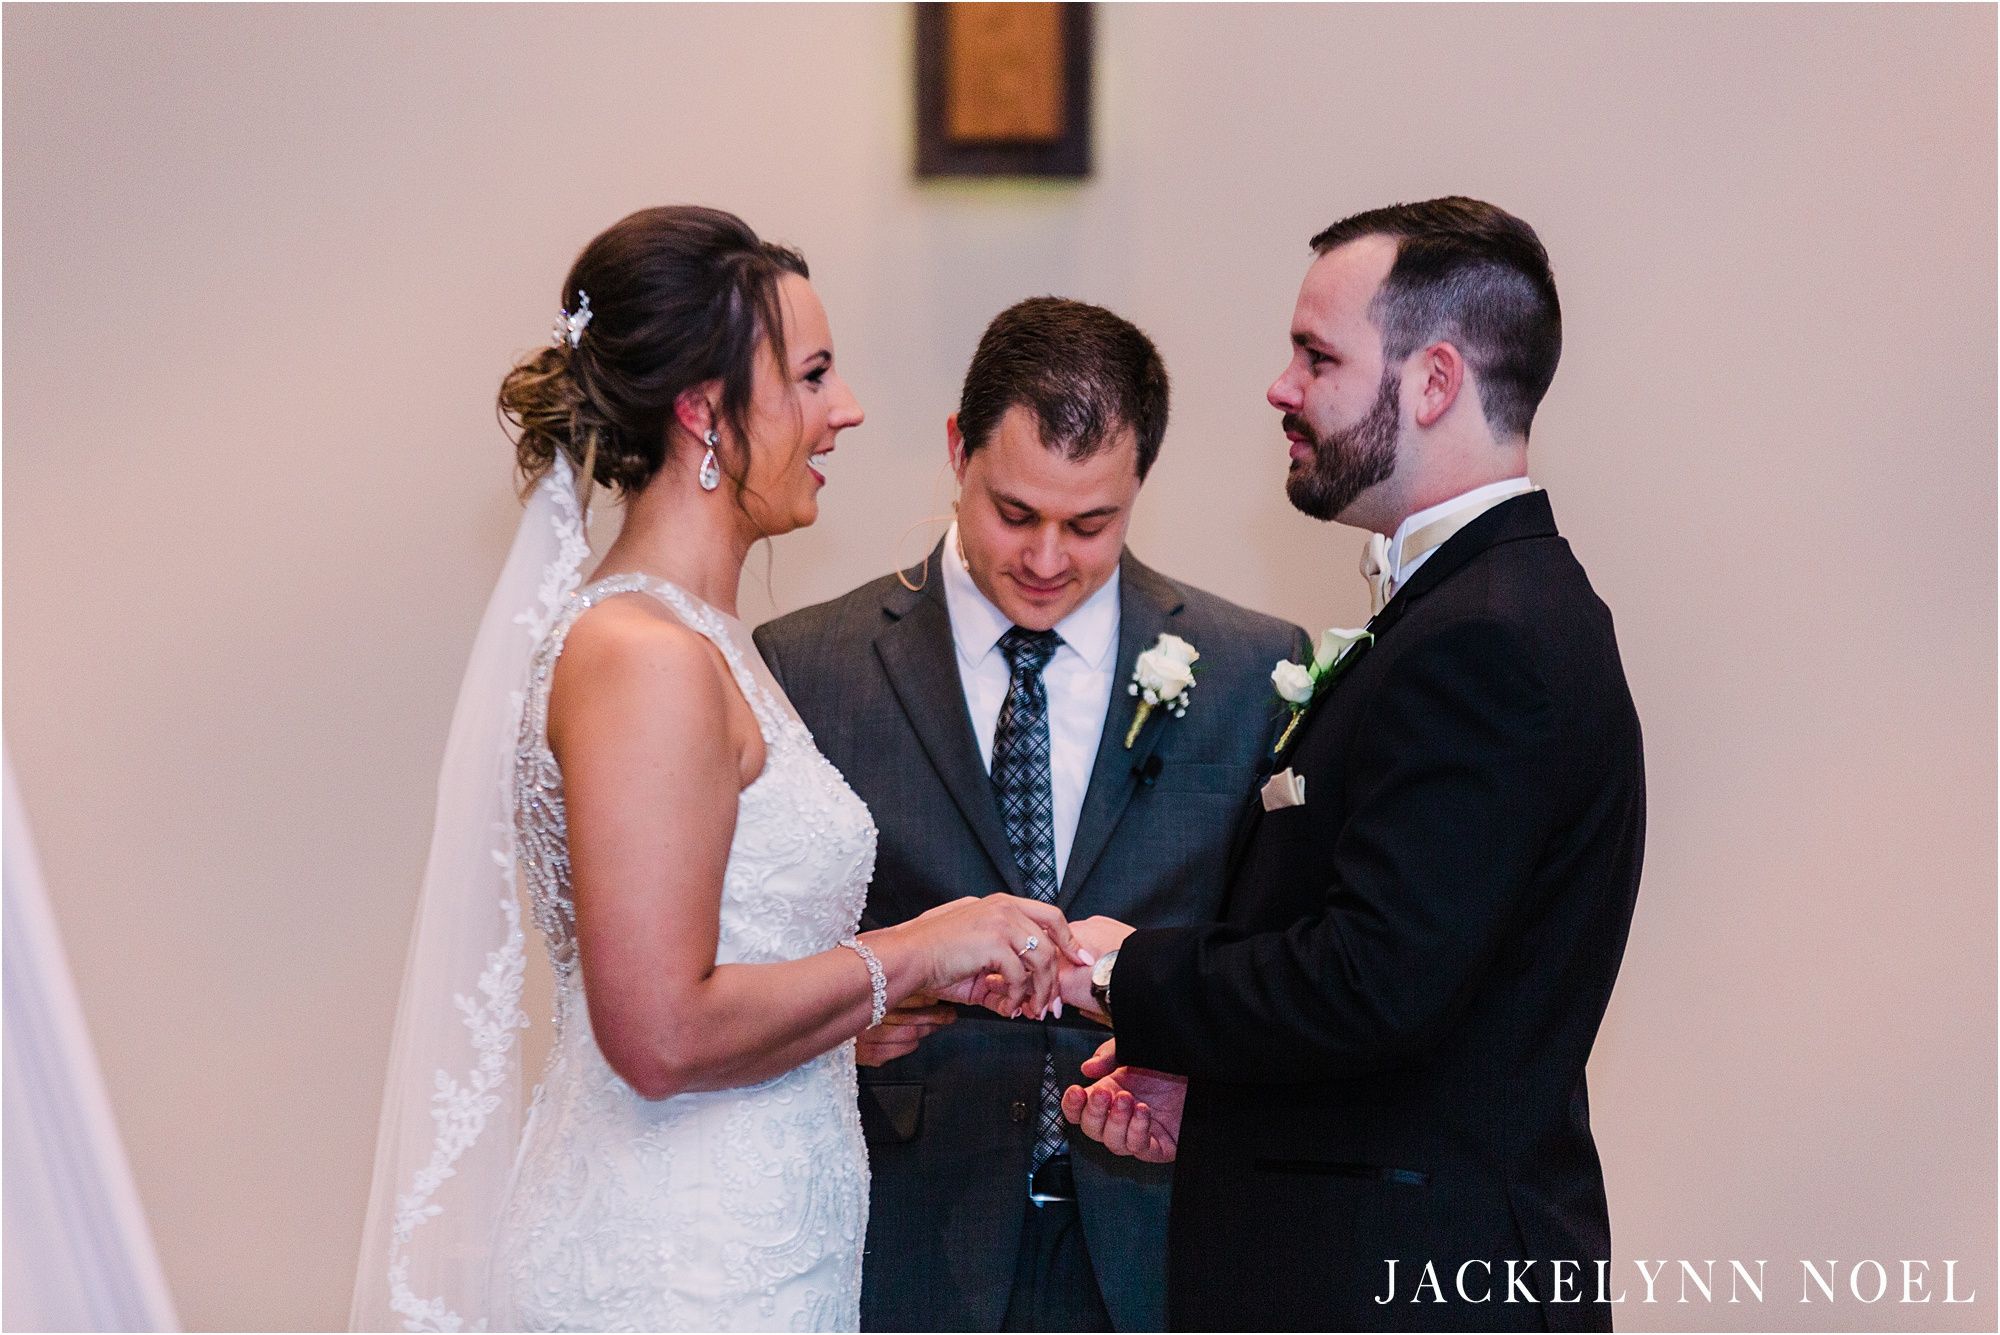 Courtney and Daniel's wedding at Aerie's Winery by Jackelynn Noel Photography